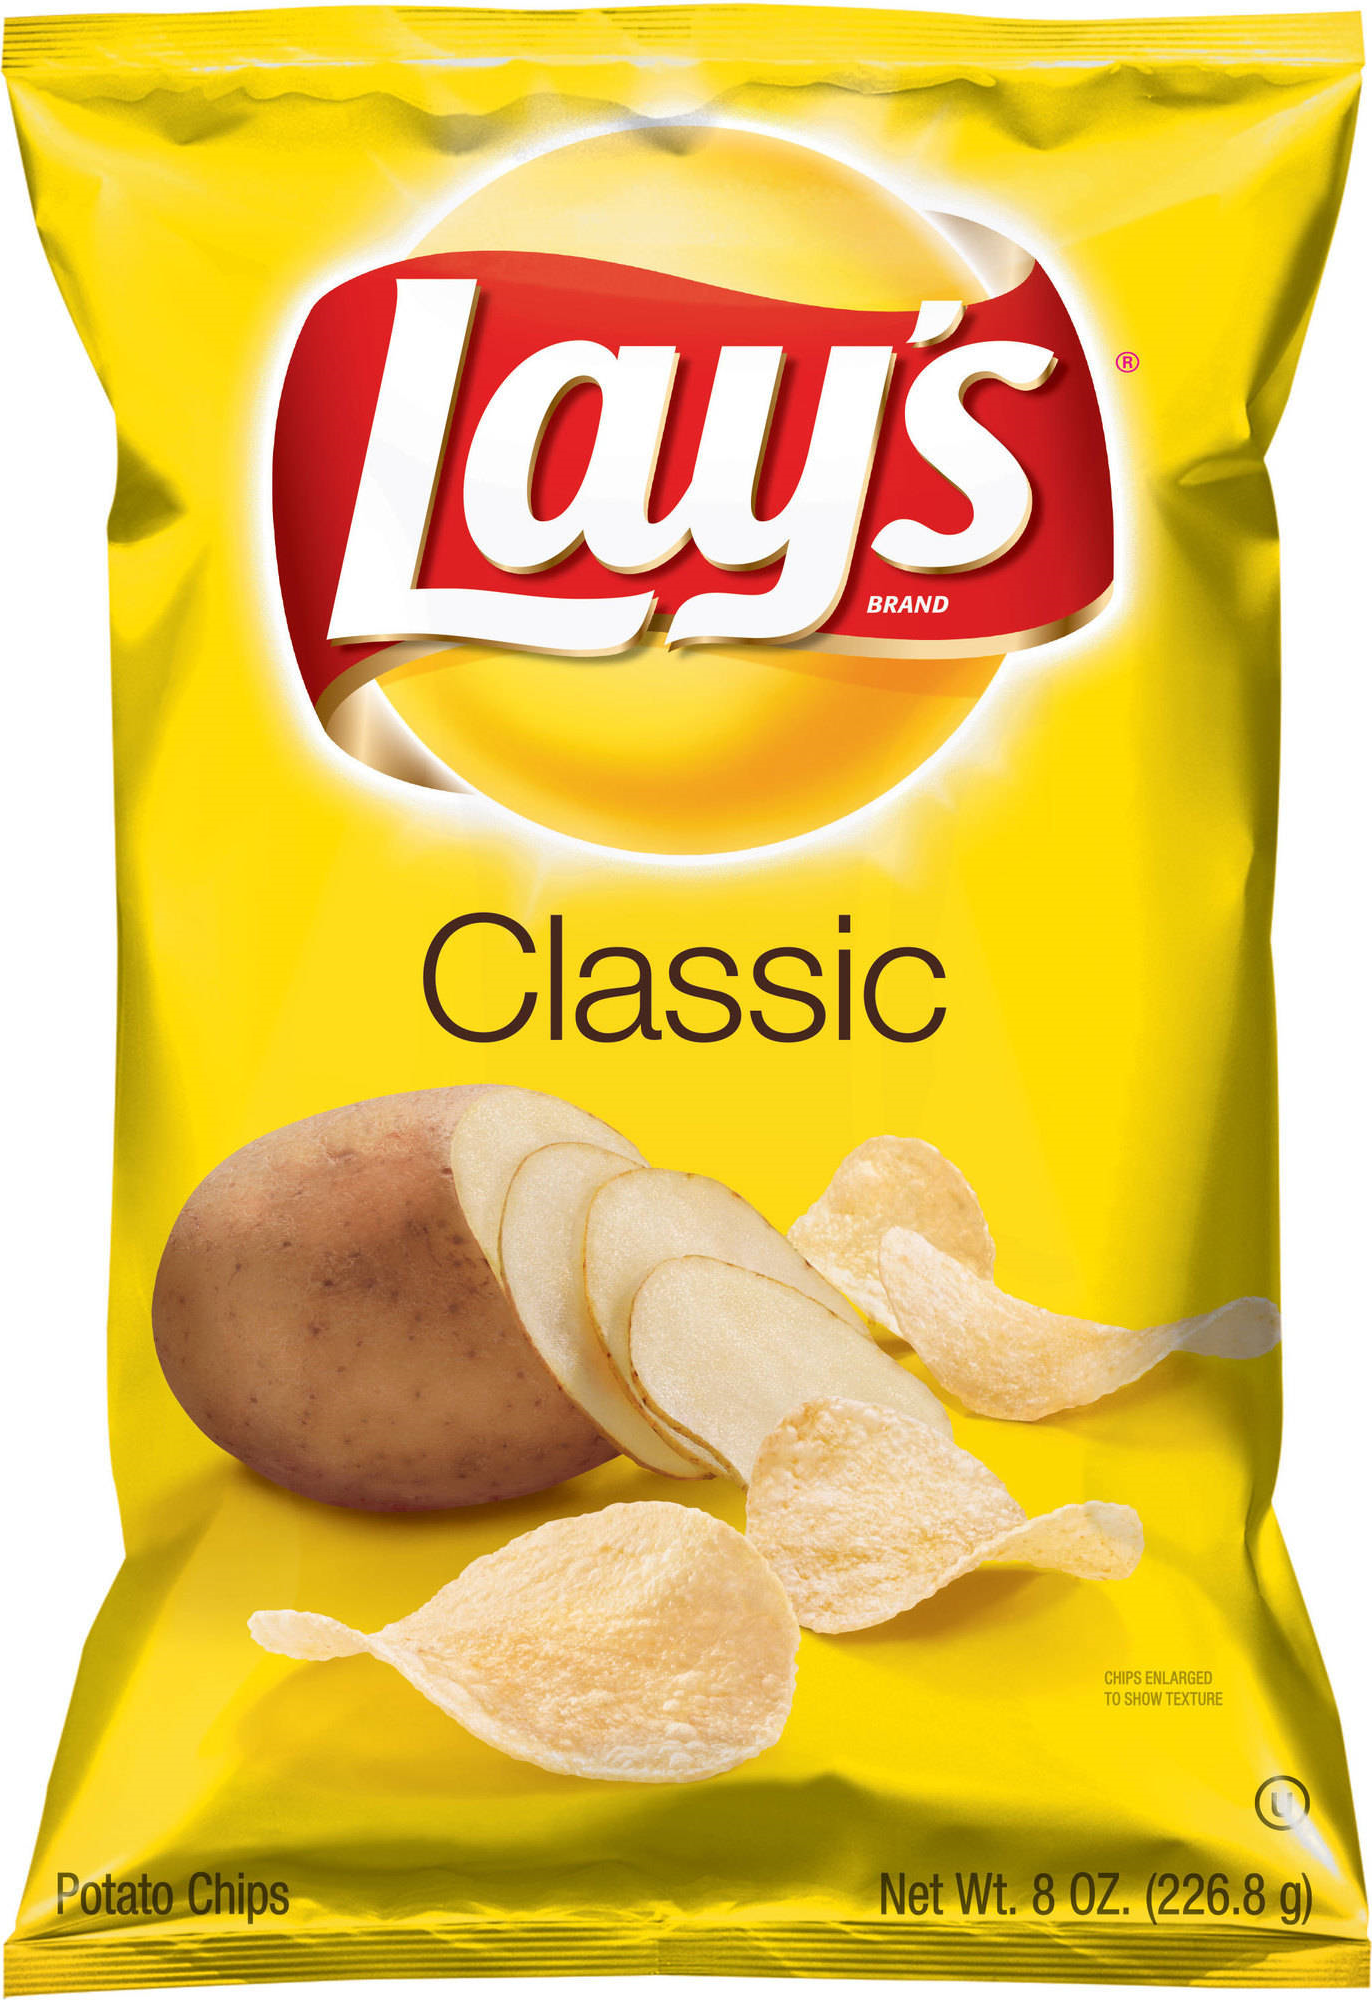 Pin By Addi K On Funny Potato Chip Bags Potato Chips Lays Chips Flavors Chips